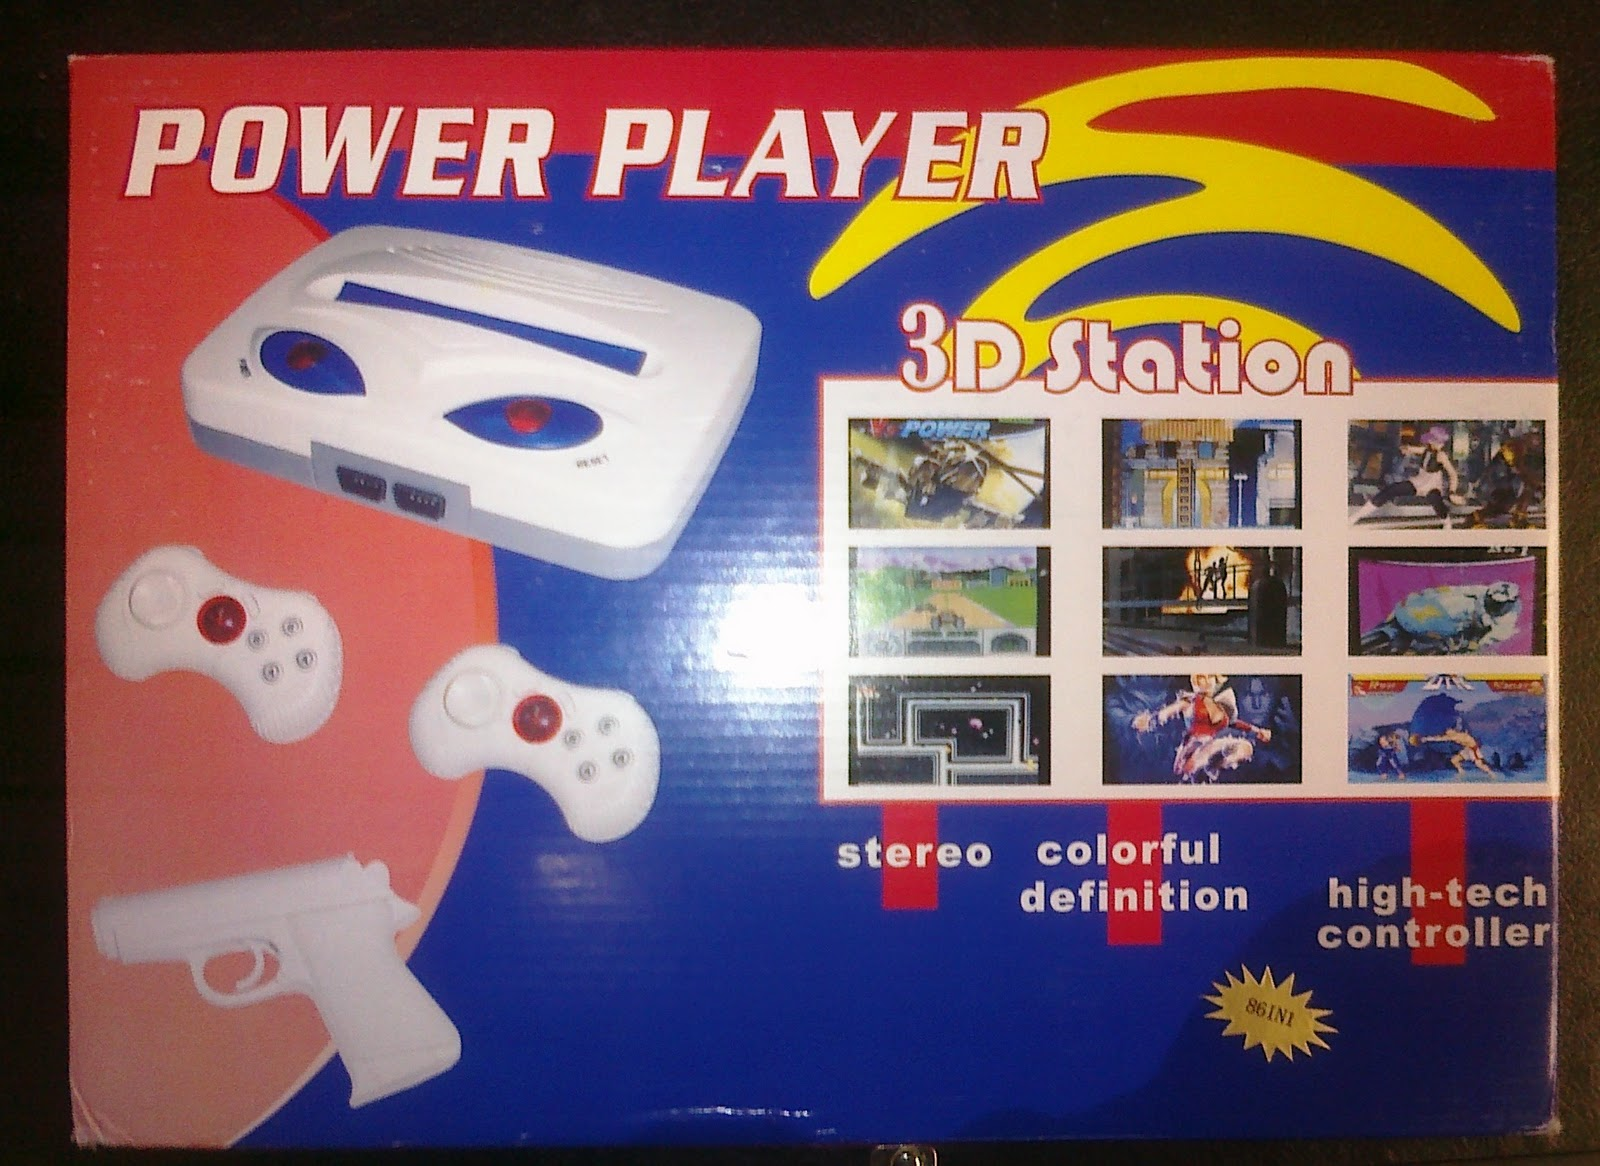 Poverty Game Night: Power Player 3D Station